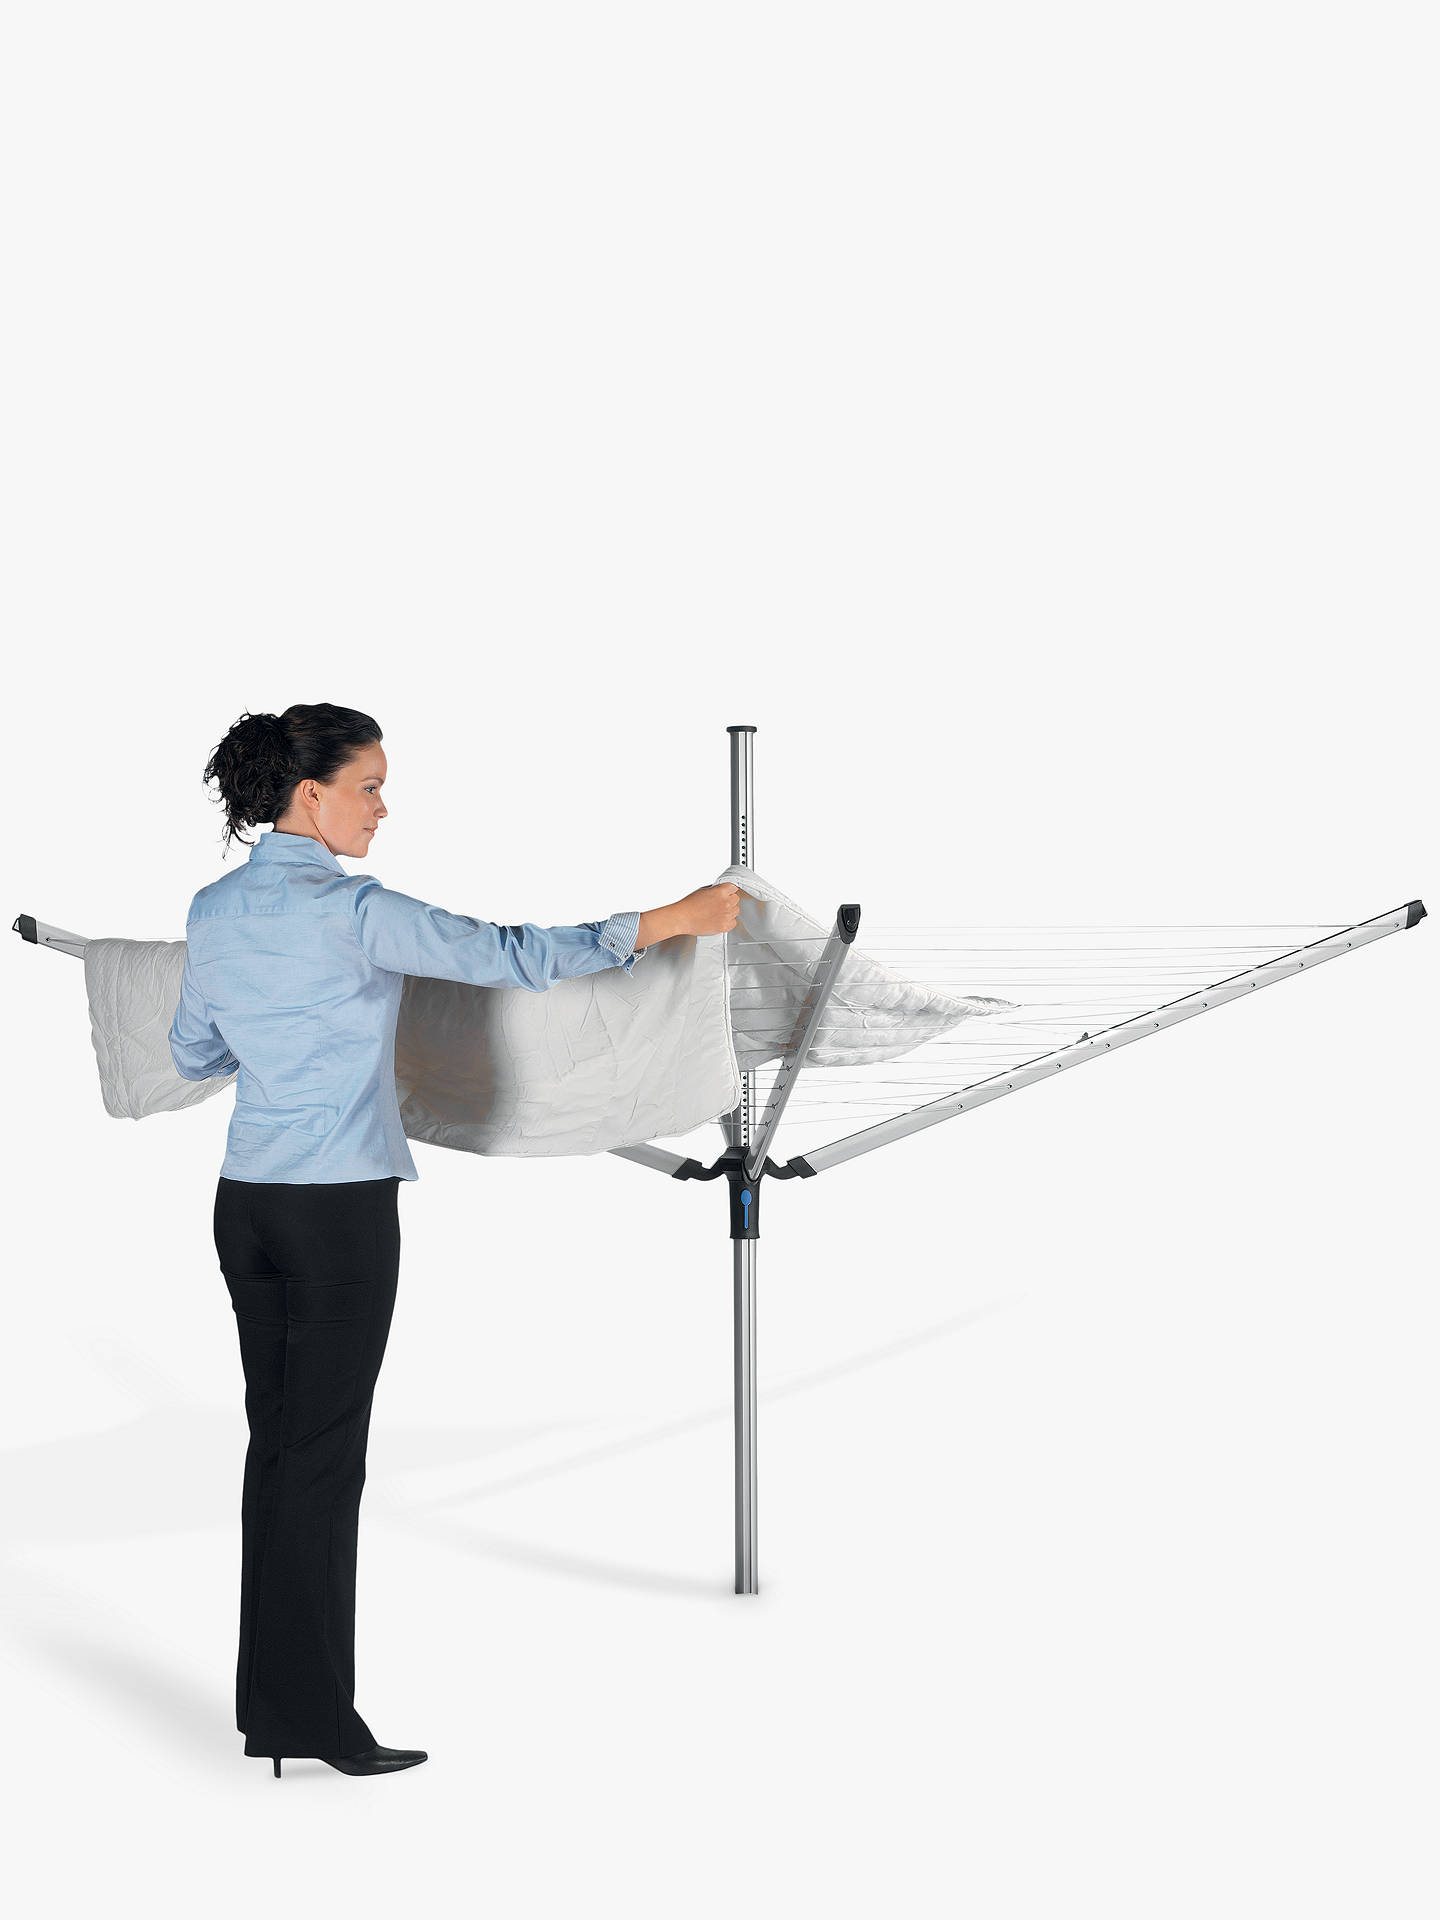 Buy Brabantia Lift-O-Matic Advance Rotary Clothes Outdoor Airer Washing Line with Ground Tube, Cover and Peg Bag, 50m Online at johnlewis.com